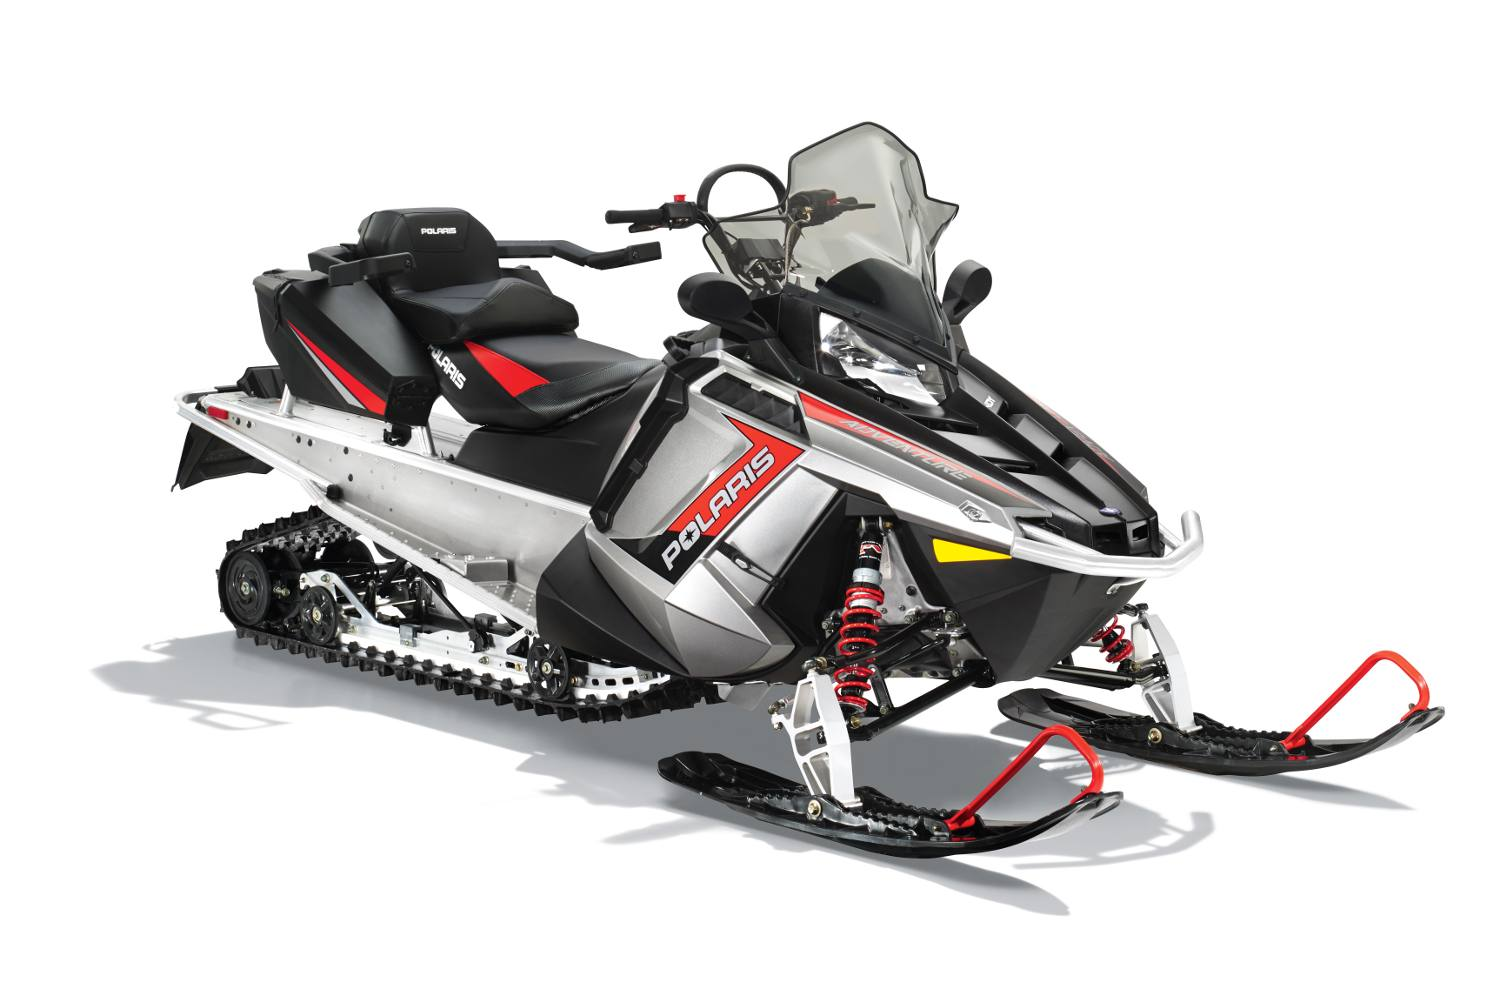 2015 Polaris Industries 15 550 INDY ADVENTURE 155 For Sale In Pine